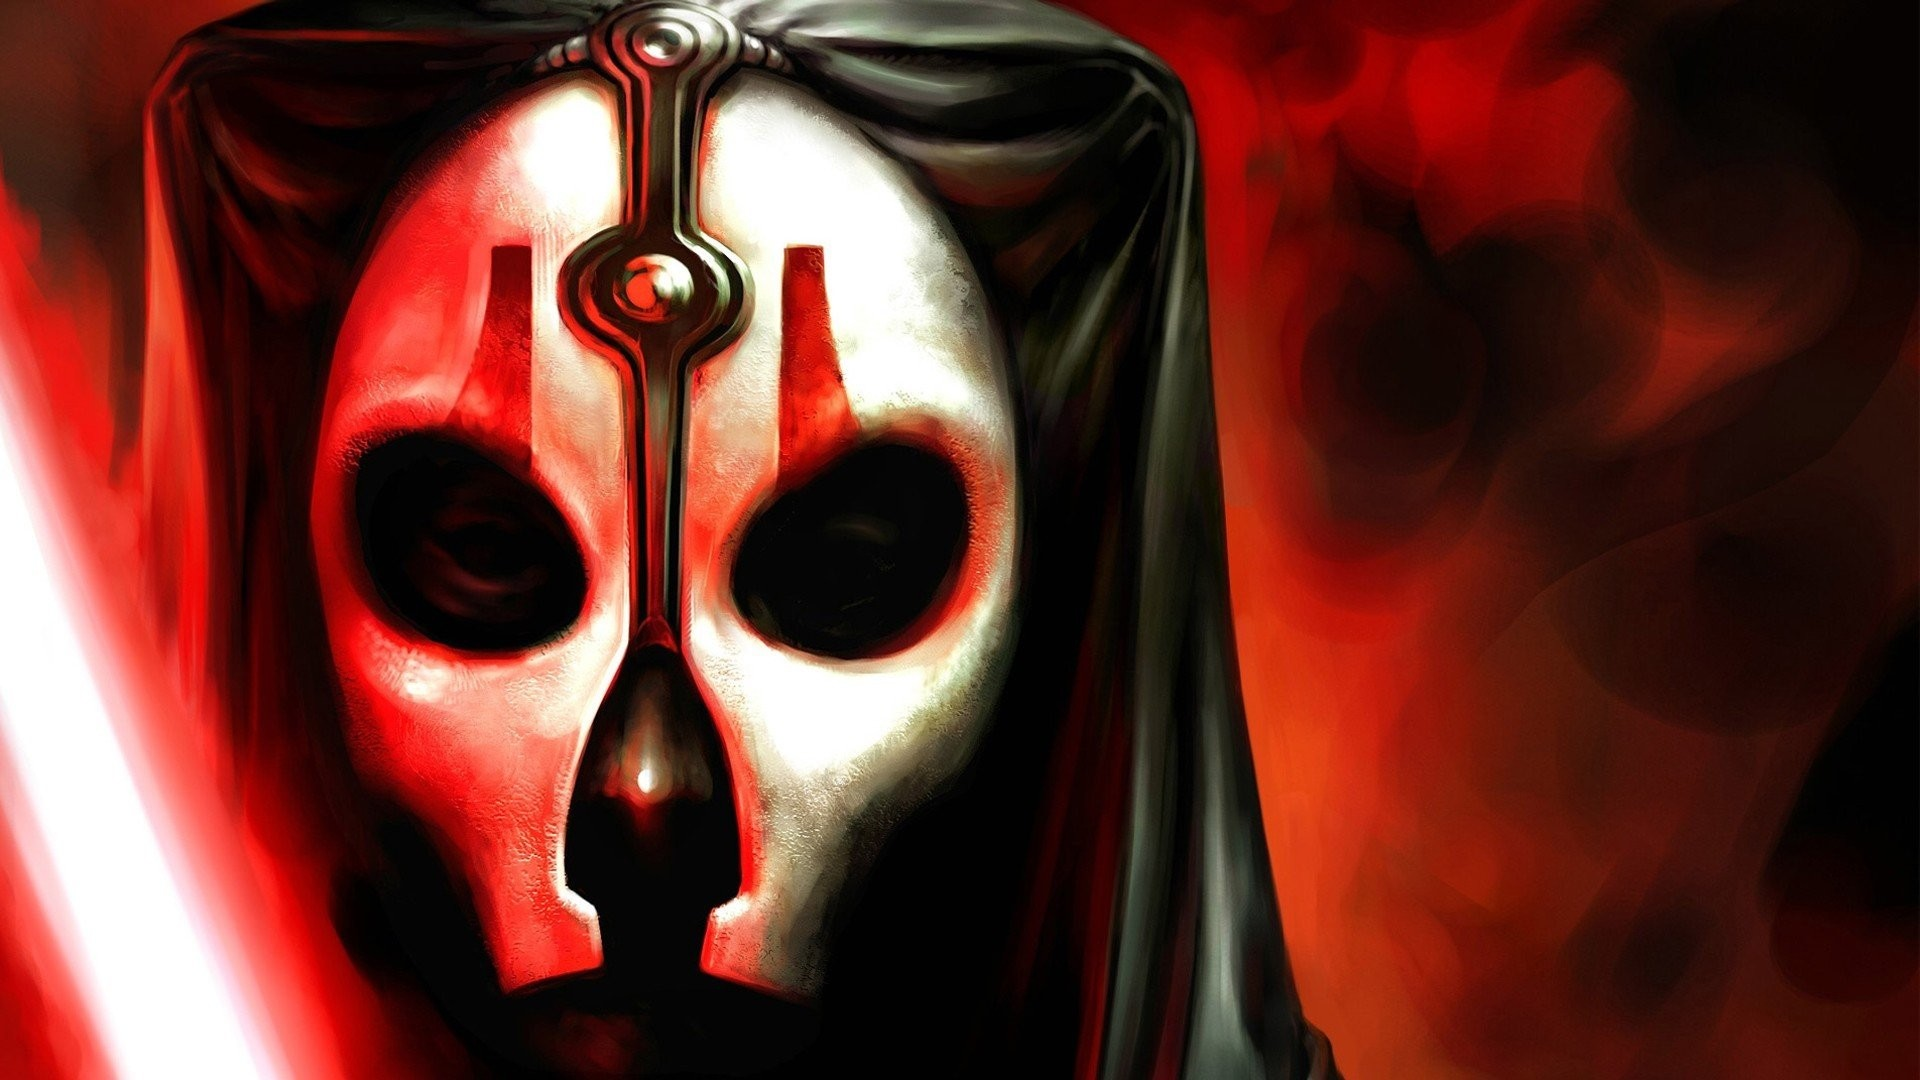 Star Wars Sith Wallpapers Photo